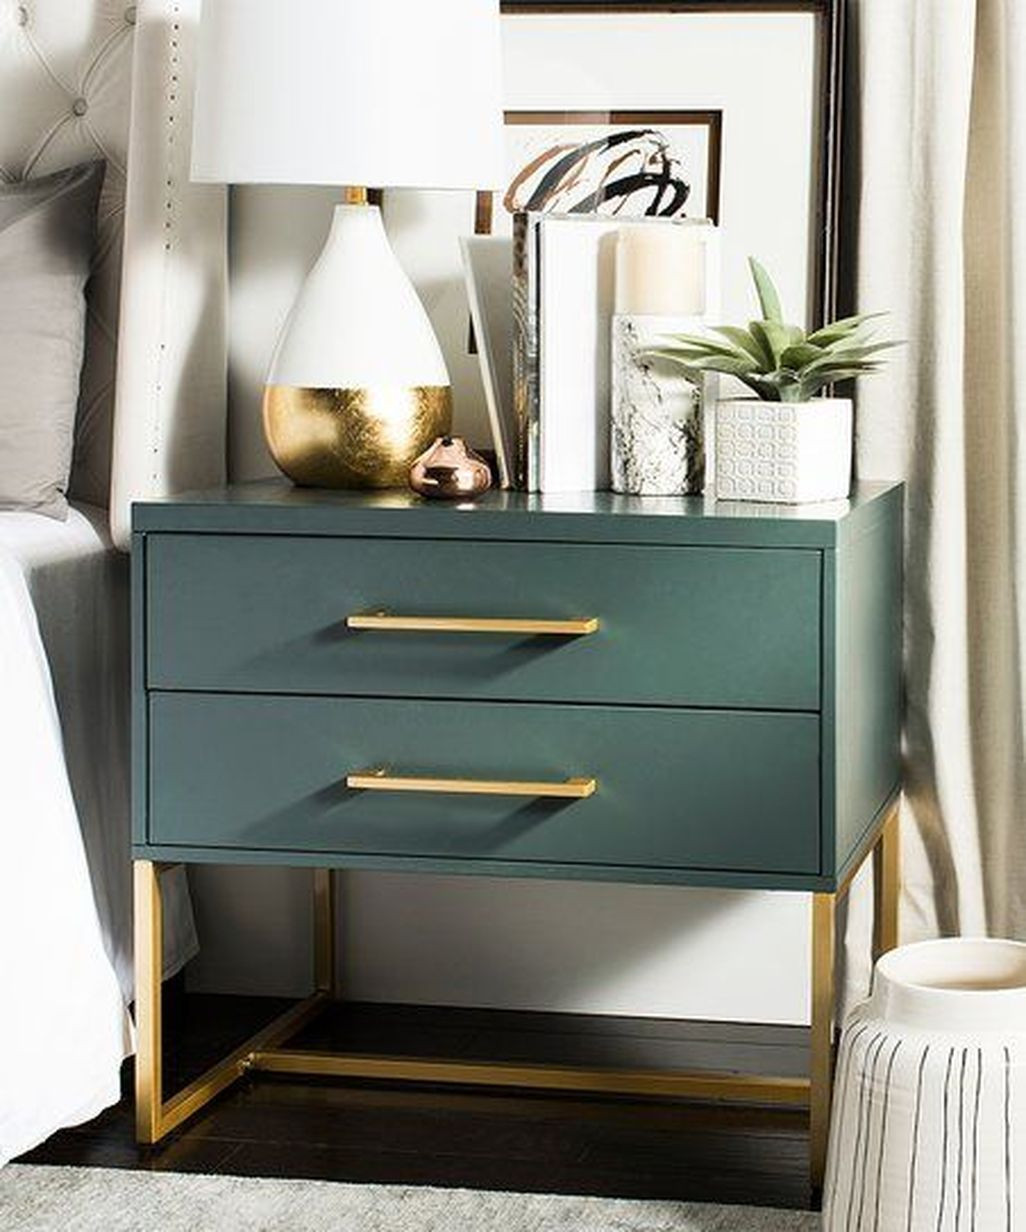 Interesting Nightstand Designs 44 Extremely Interesting Nightstand Designs for Your